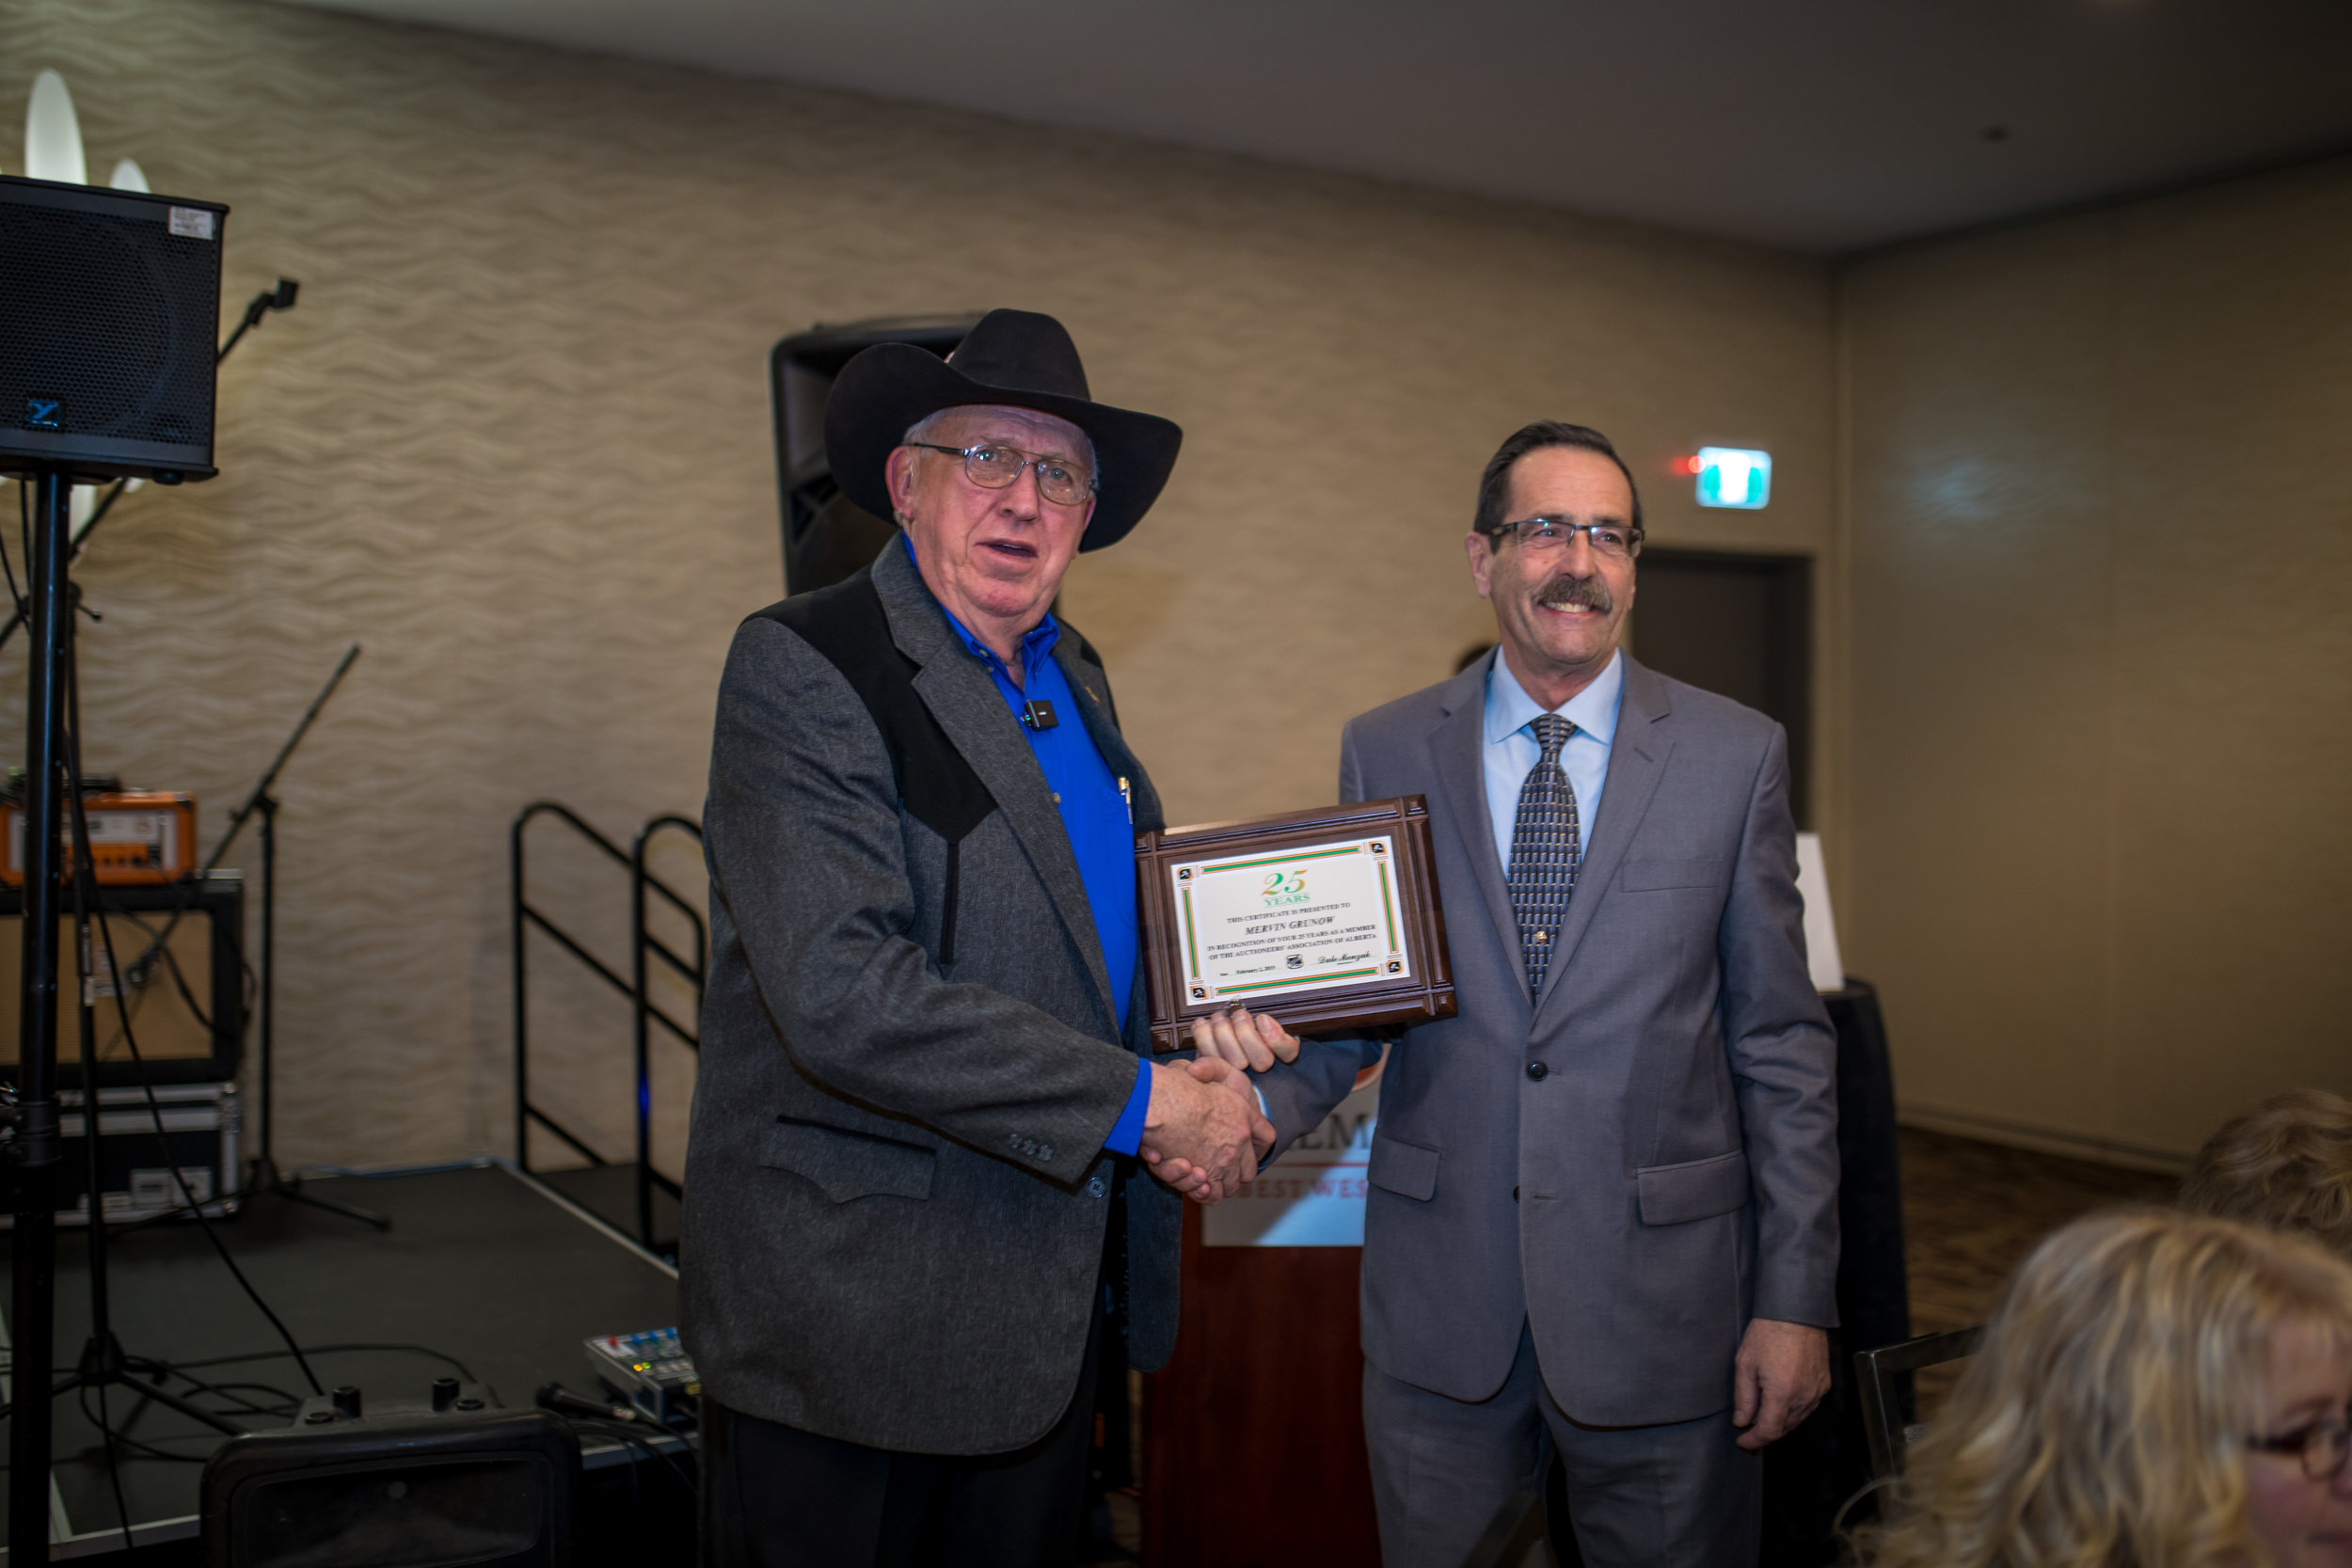 2019 02-02 Alberta Auctioneer Convention Day 03 - Calgary 01.jpg